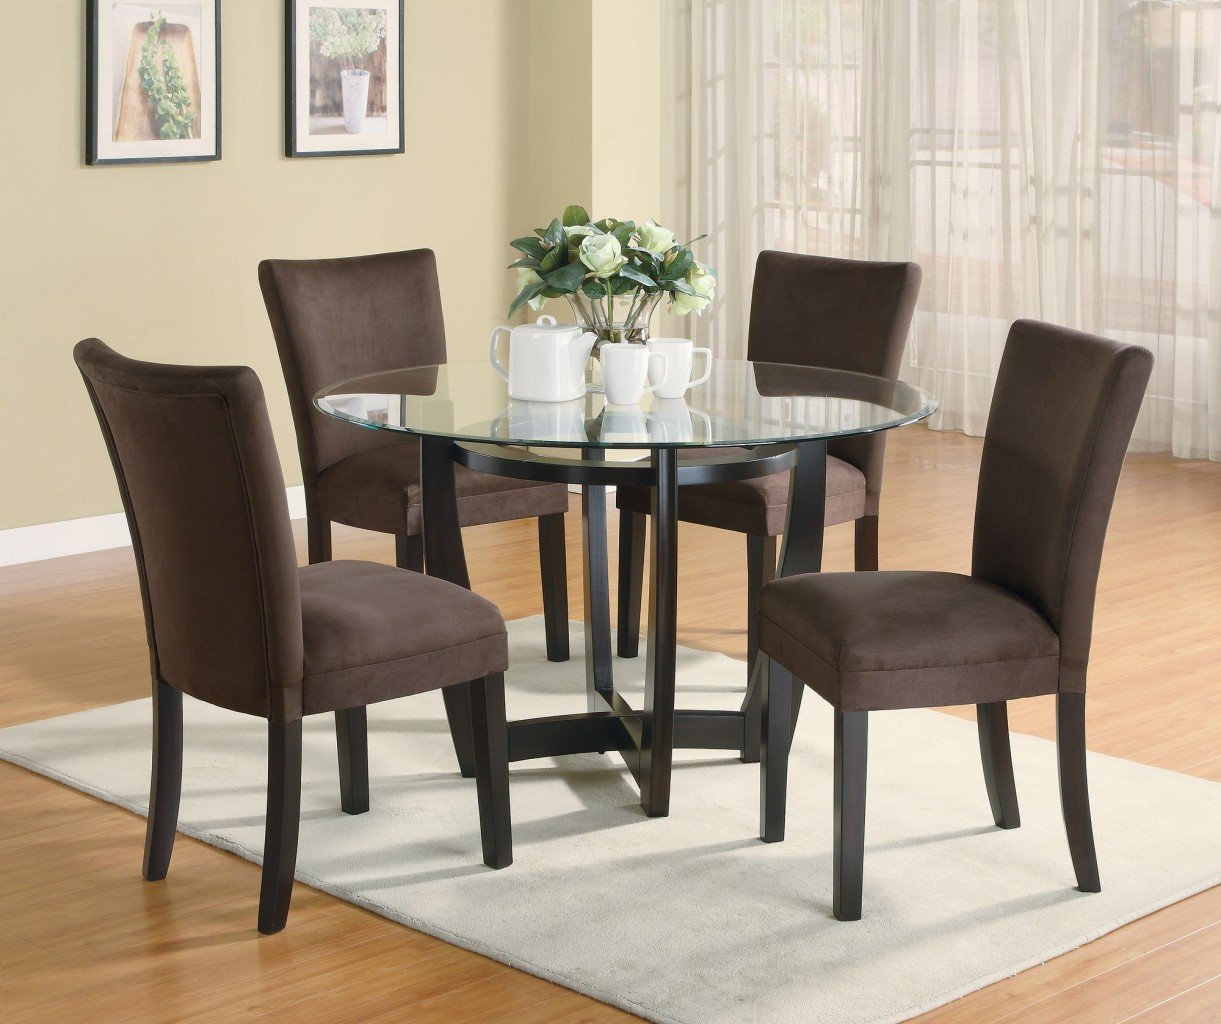 Cheap dining room table sets home furniture design for Dining room sets with round tables